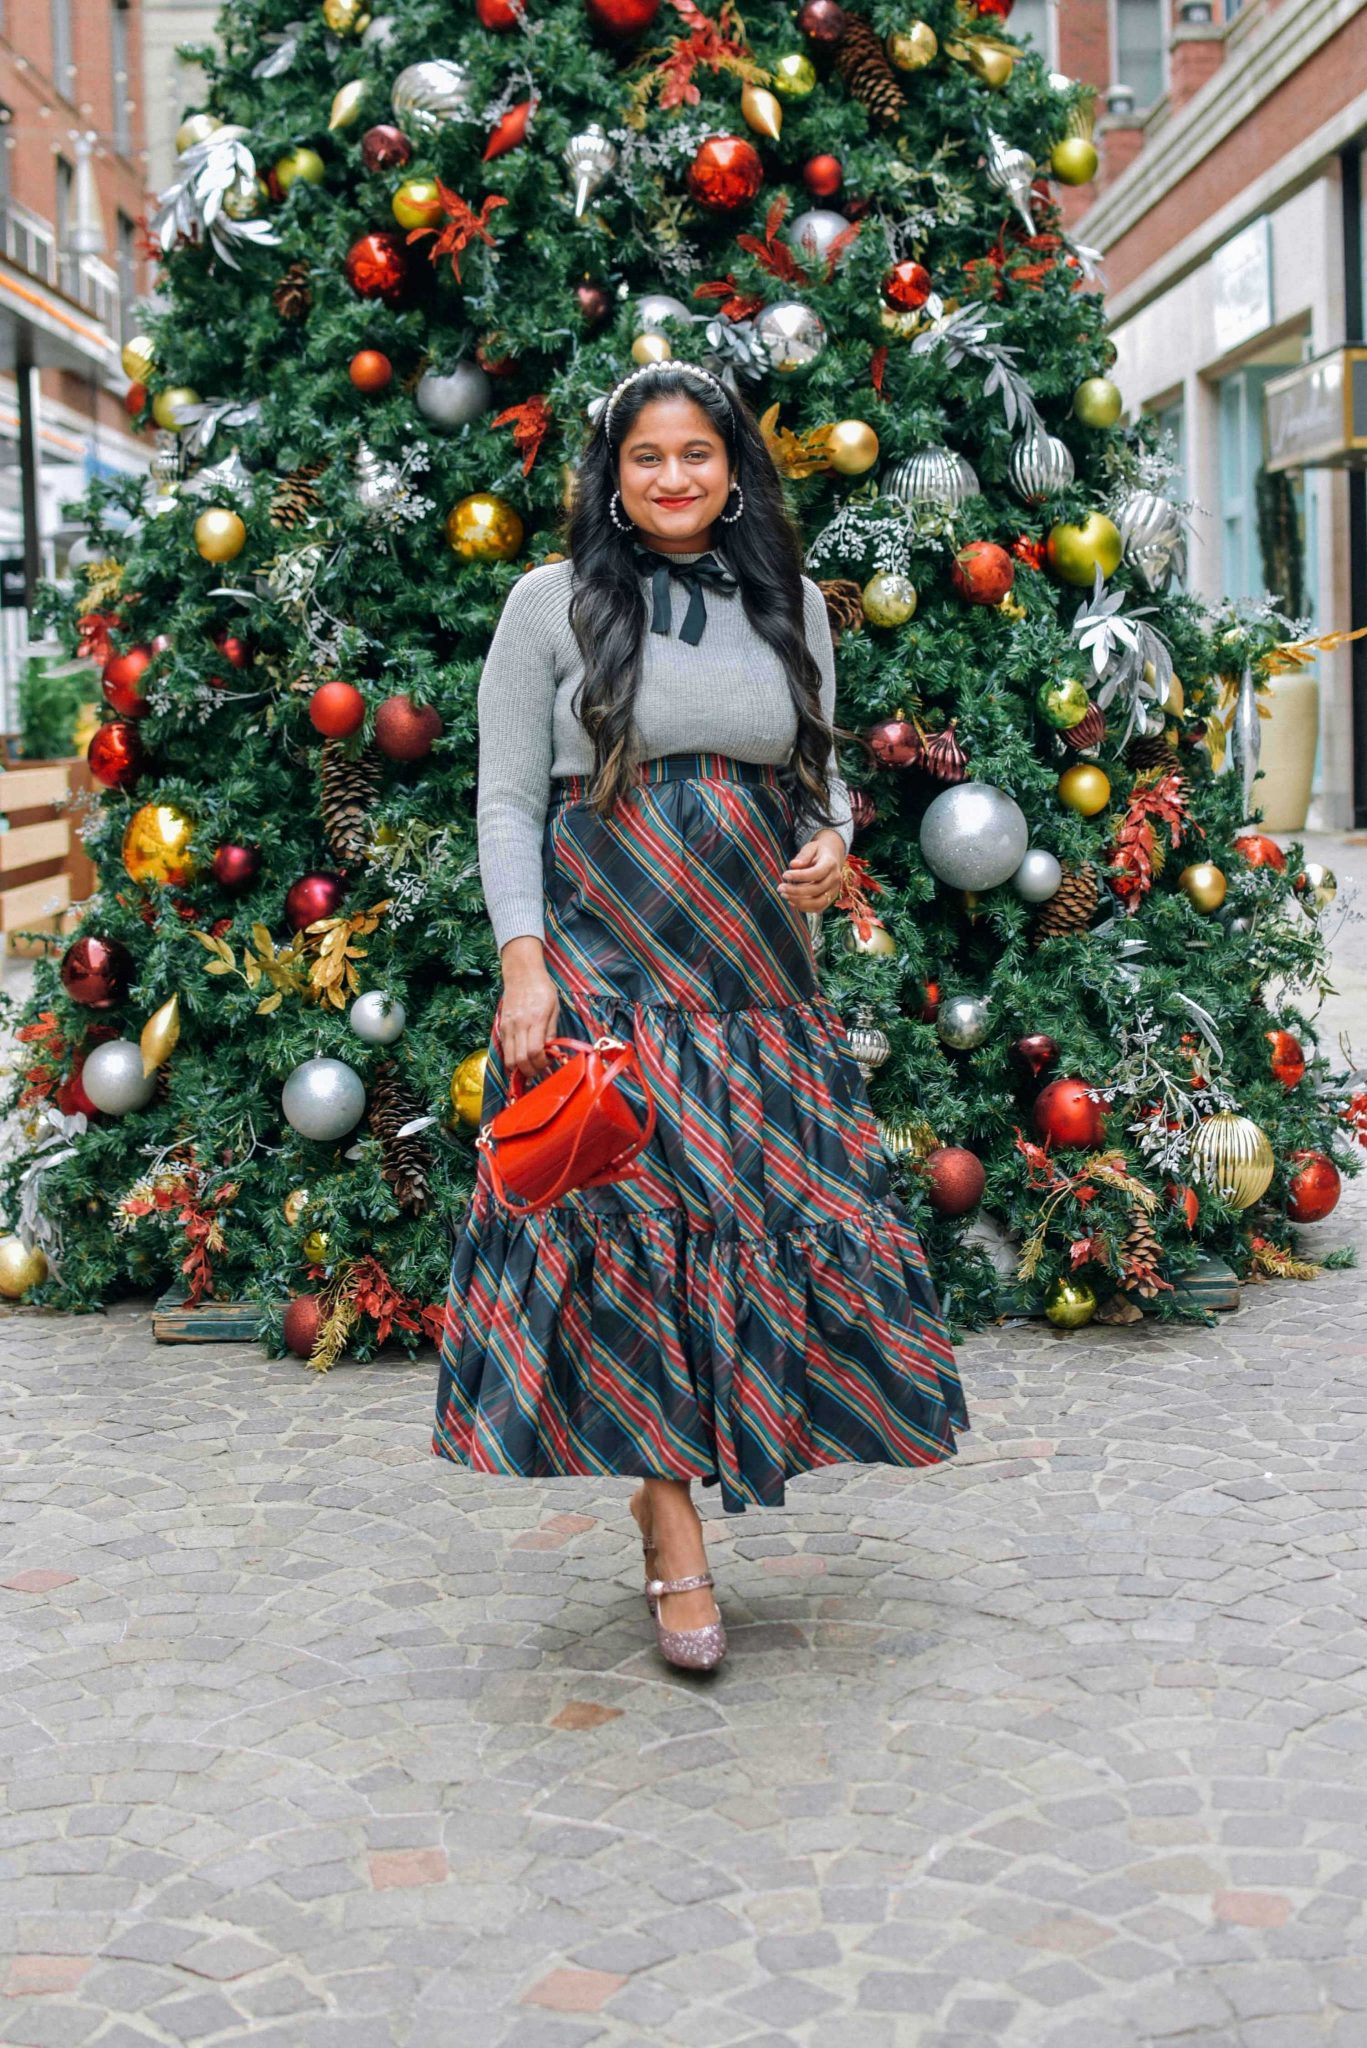 Wearing J.crew Tatran tiered sirt, bow sweater, Pink sequin pumps-Holiday Outfit ideas |Cute Holiday Outfit Ideas by popular Maryland modest fashion blog, Dreaming Loud: image of a woman wearing a J.crew Tartan Tartan skirt, grey sweater with black bow accent, pearl headband, and holding a Lulu Guinness bag.